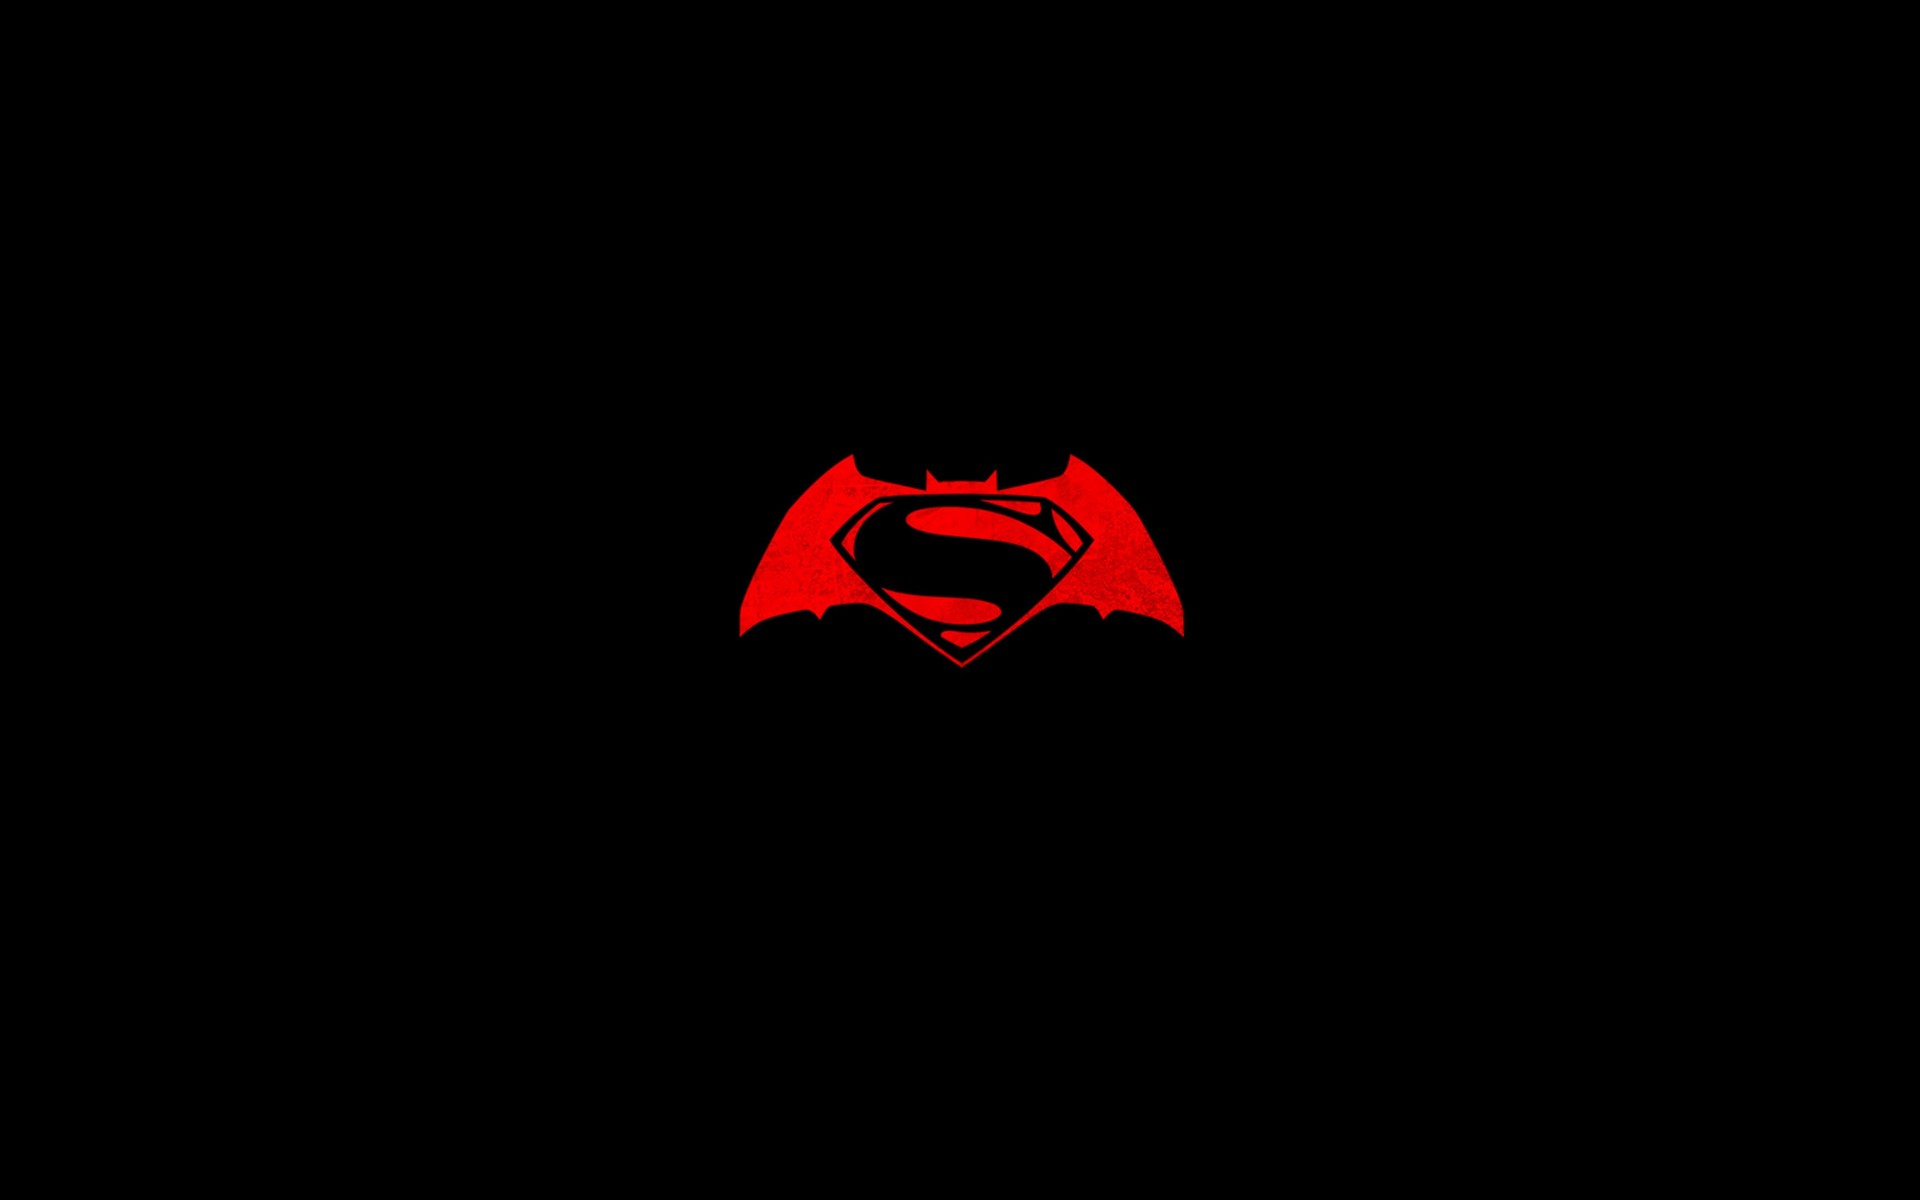 Batman v Superman logo Wallpaper for Desktop 1920x1200